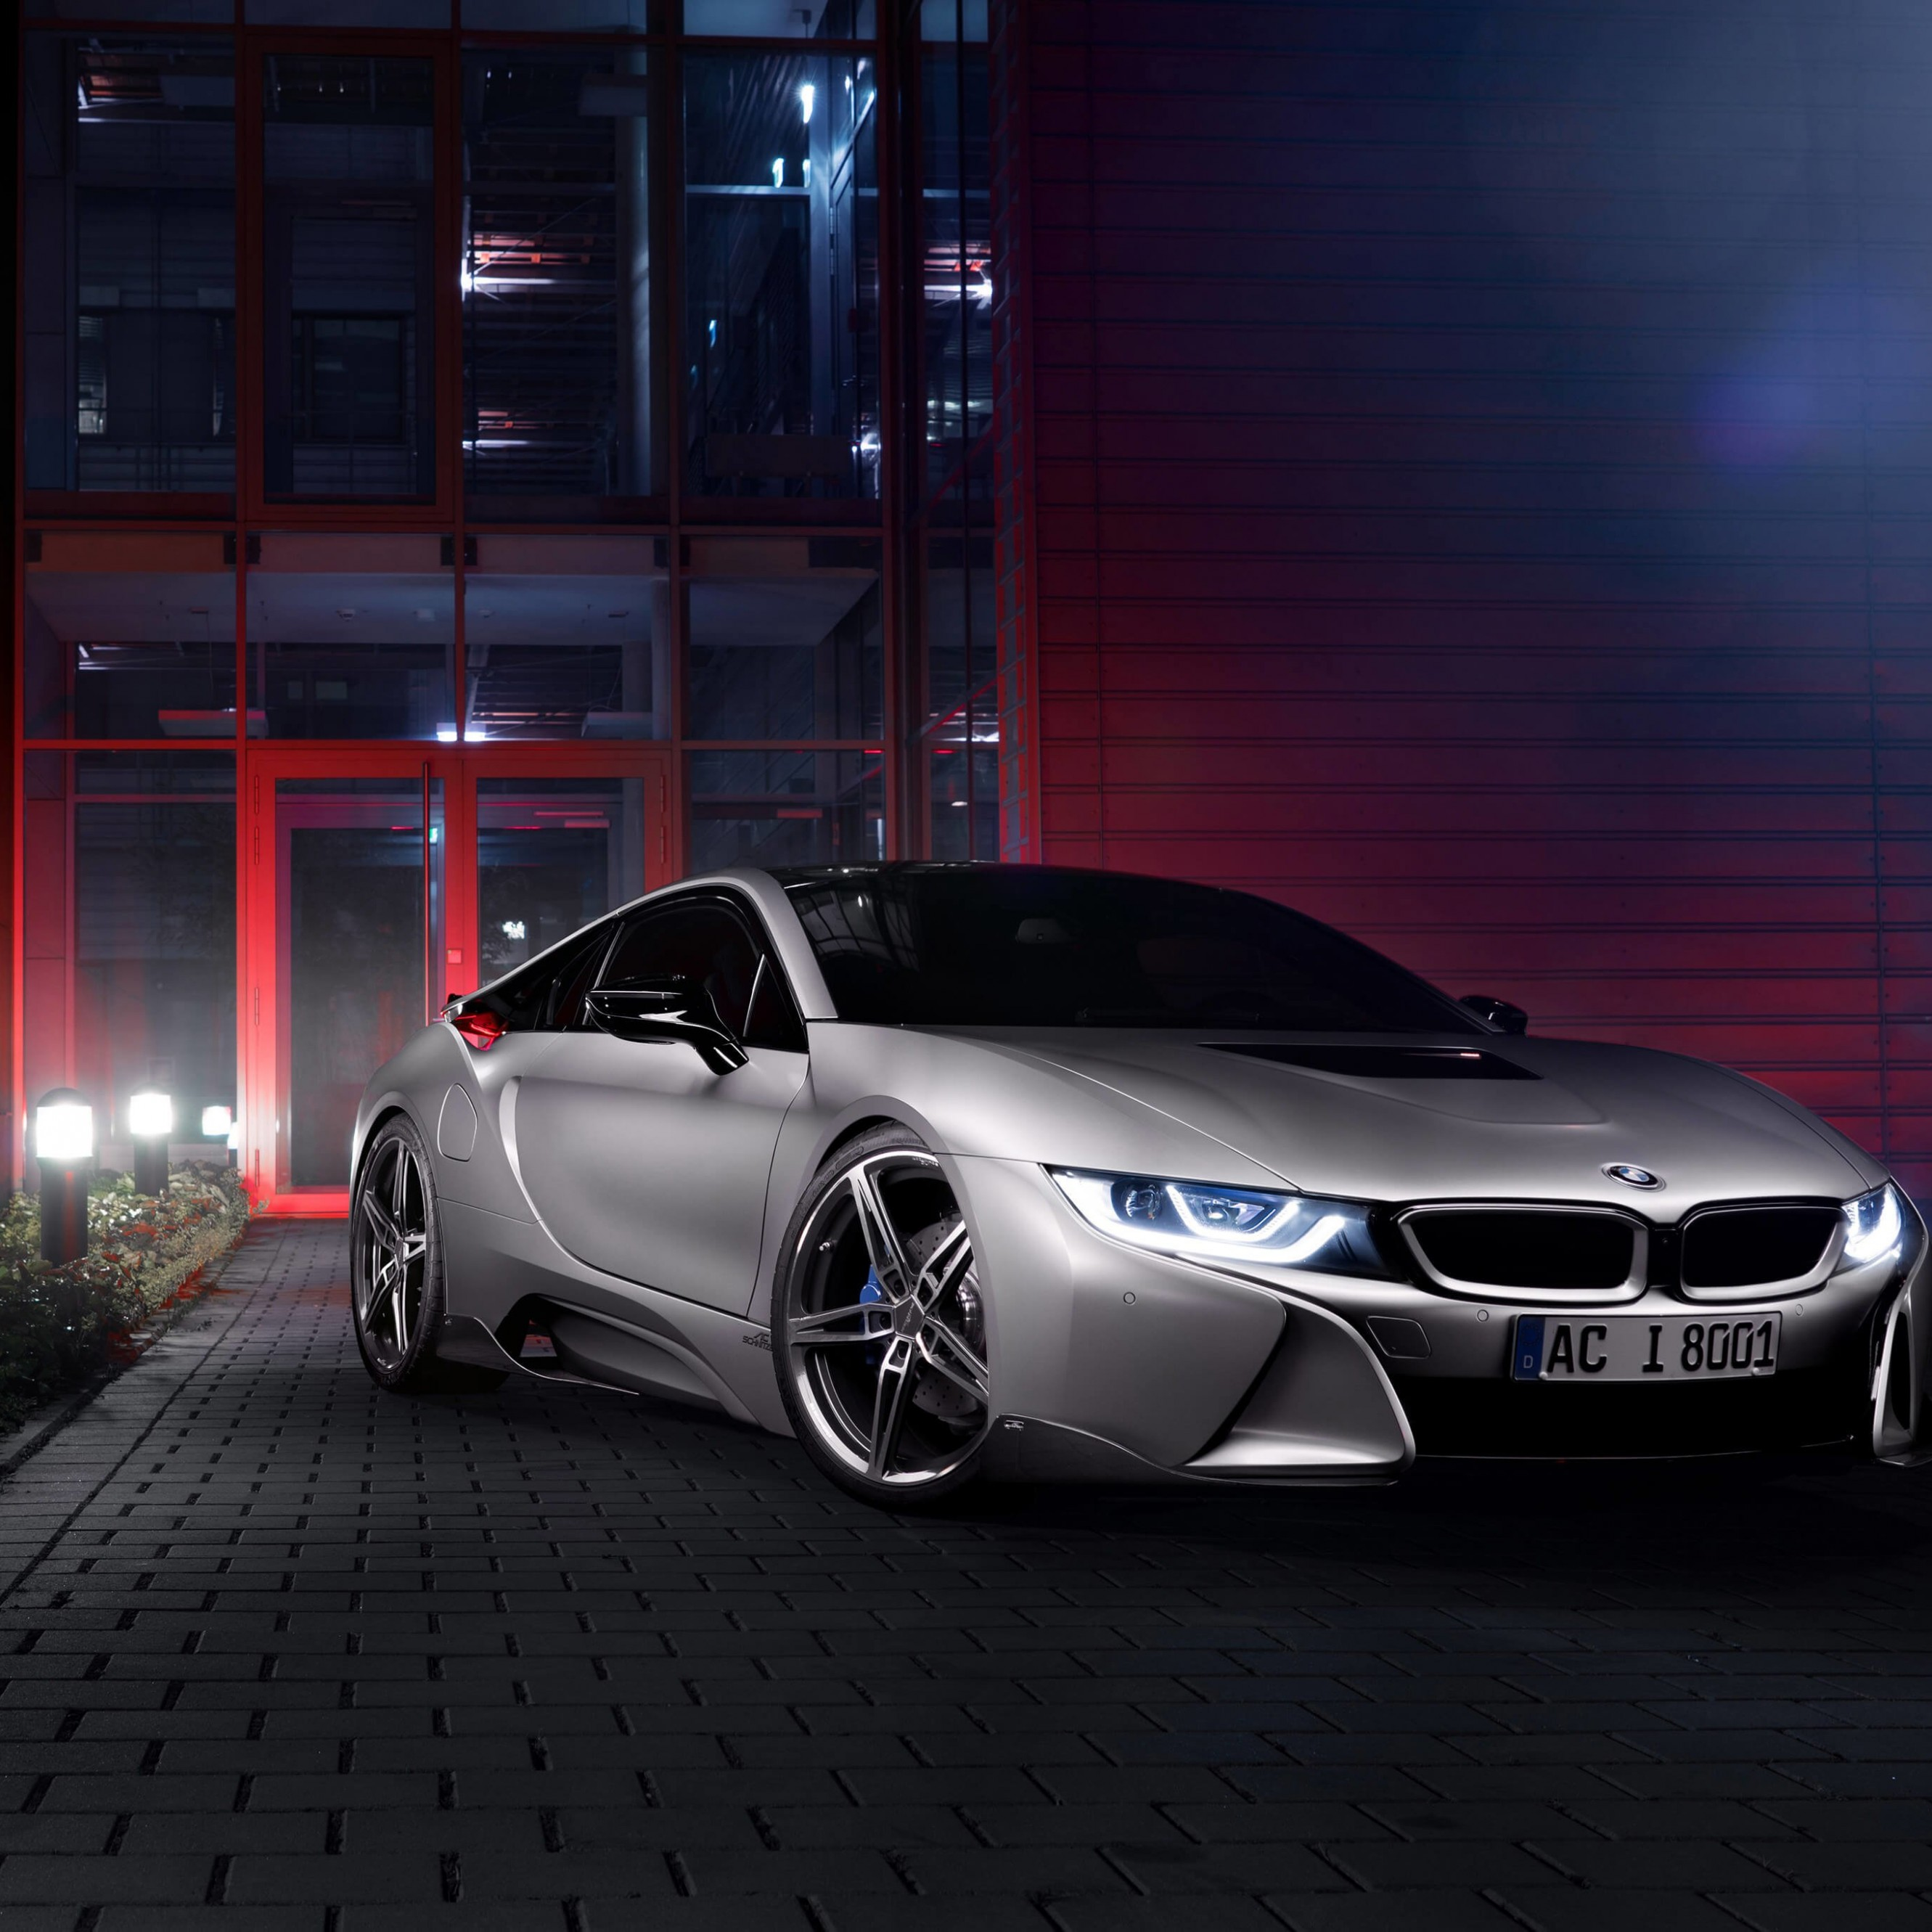 BMW i8 designed by AC Schnitzer Wallpaper for Apple iPhone 6 Plus